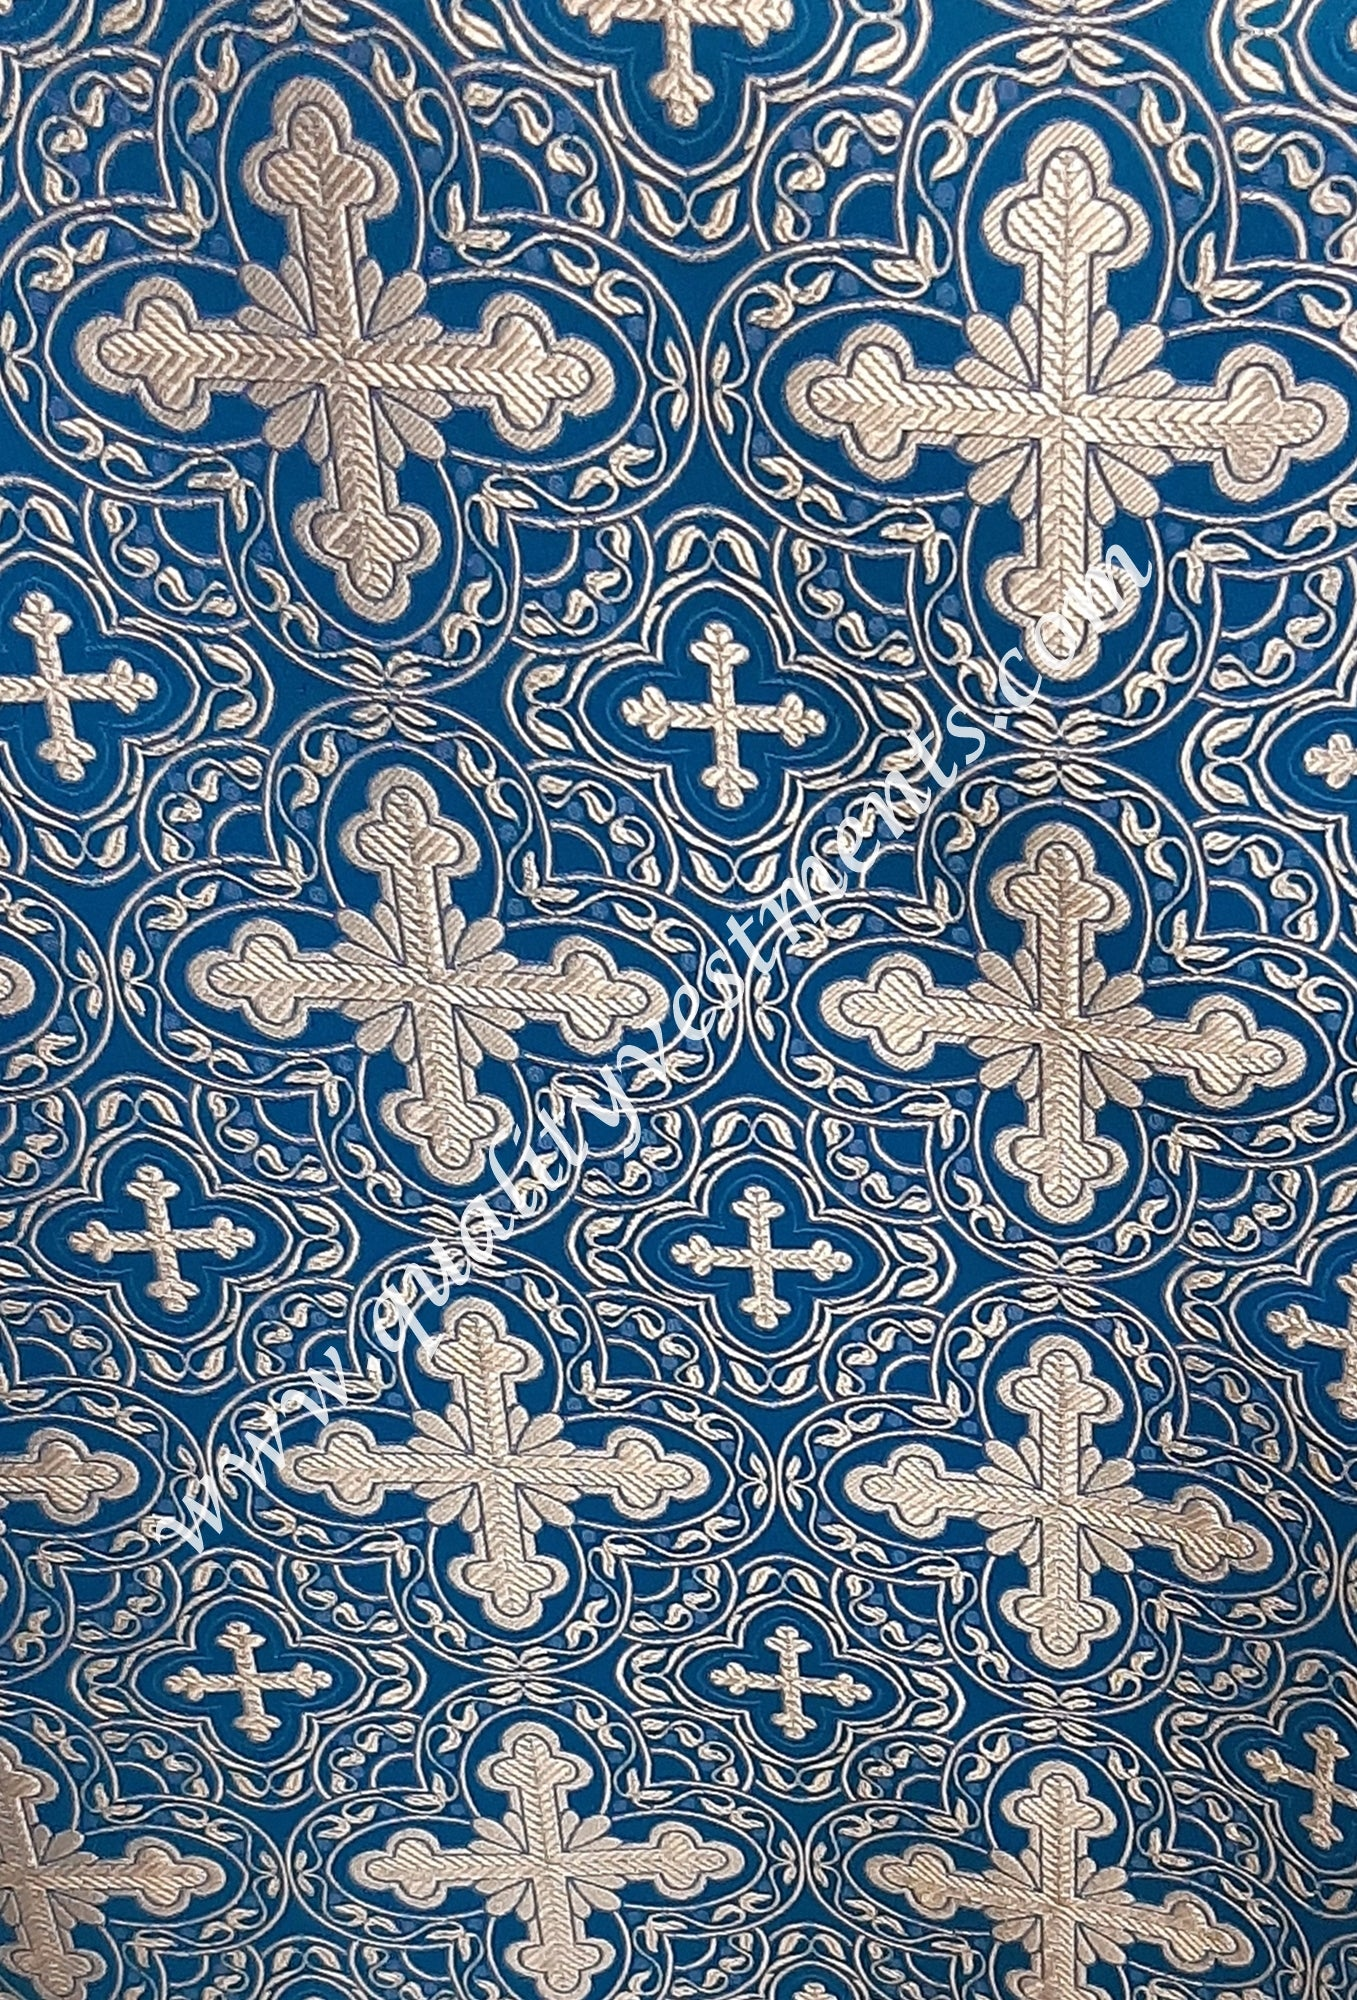 "Blue Vestment fabric Cross pattern Nonmetallic Liturgical sewing 59"" wide."